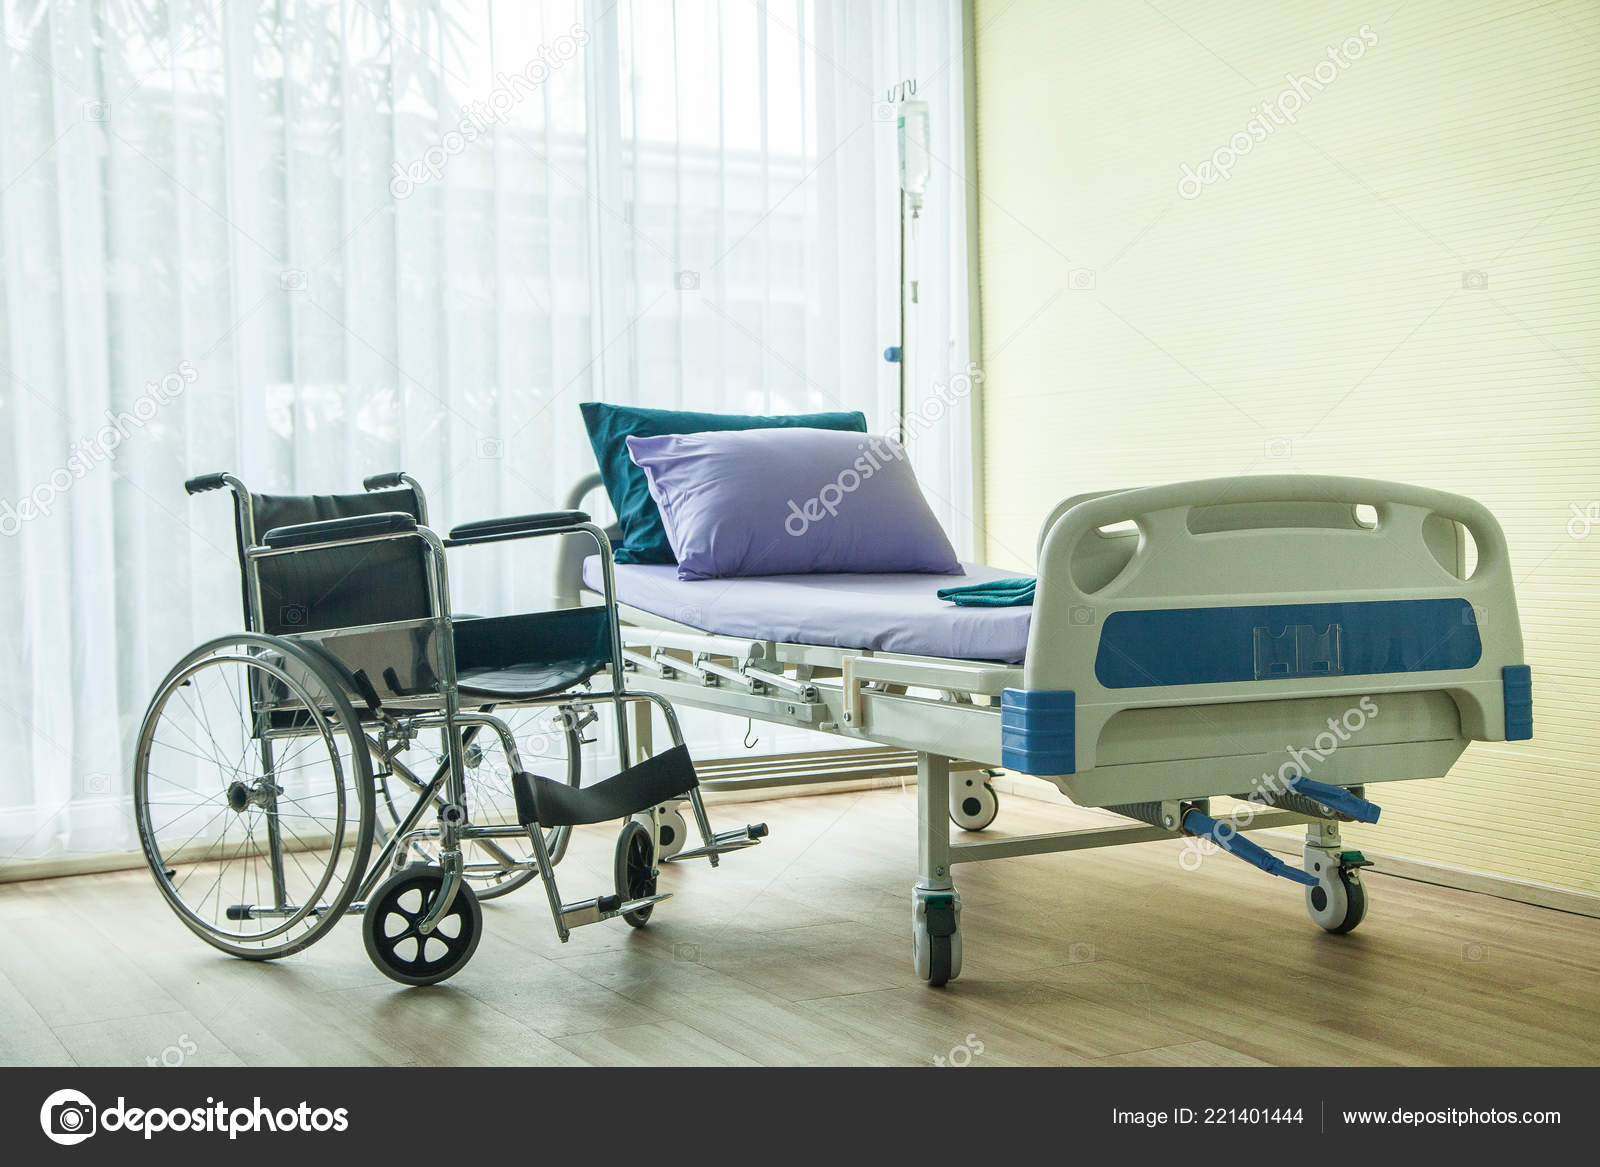 Bed Wheelchair Wheelchair Bed Hospital Waiting Used Sick People Bed Window Have